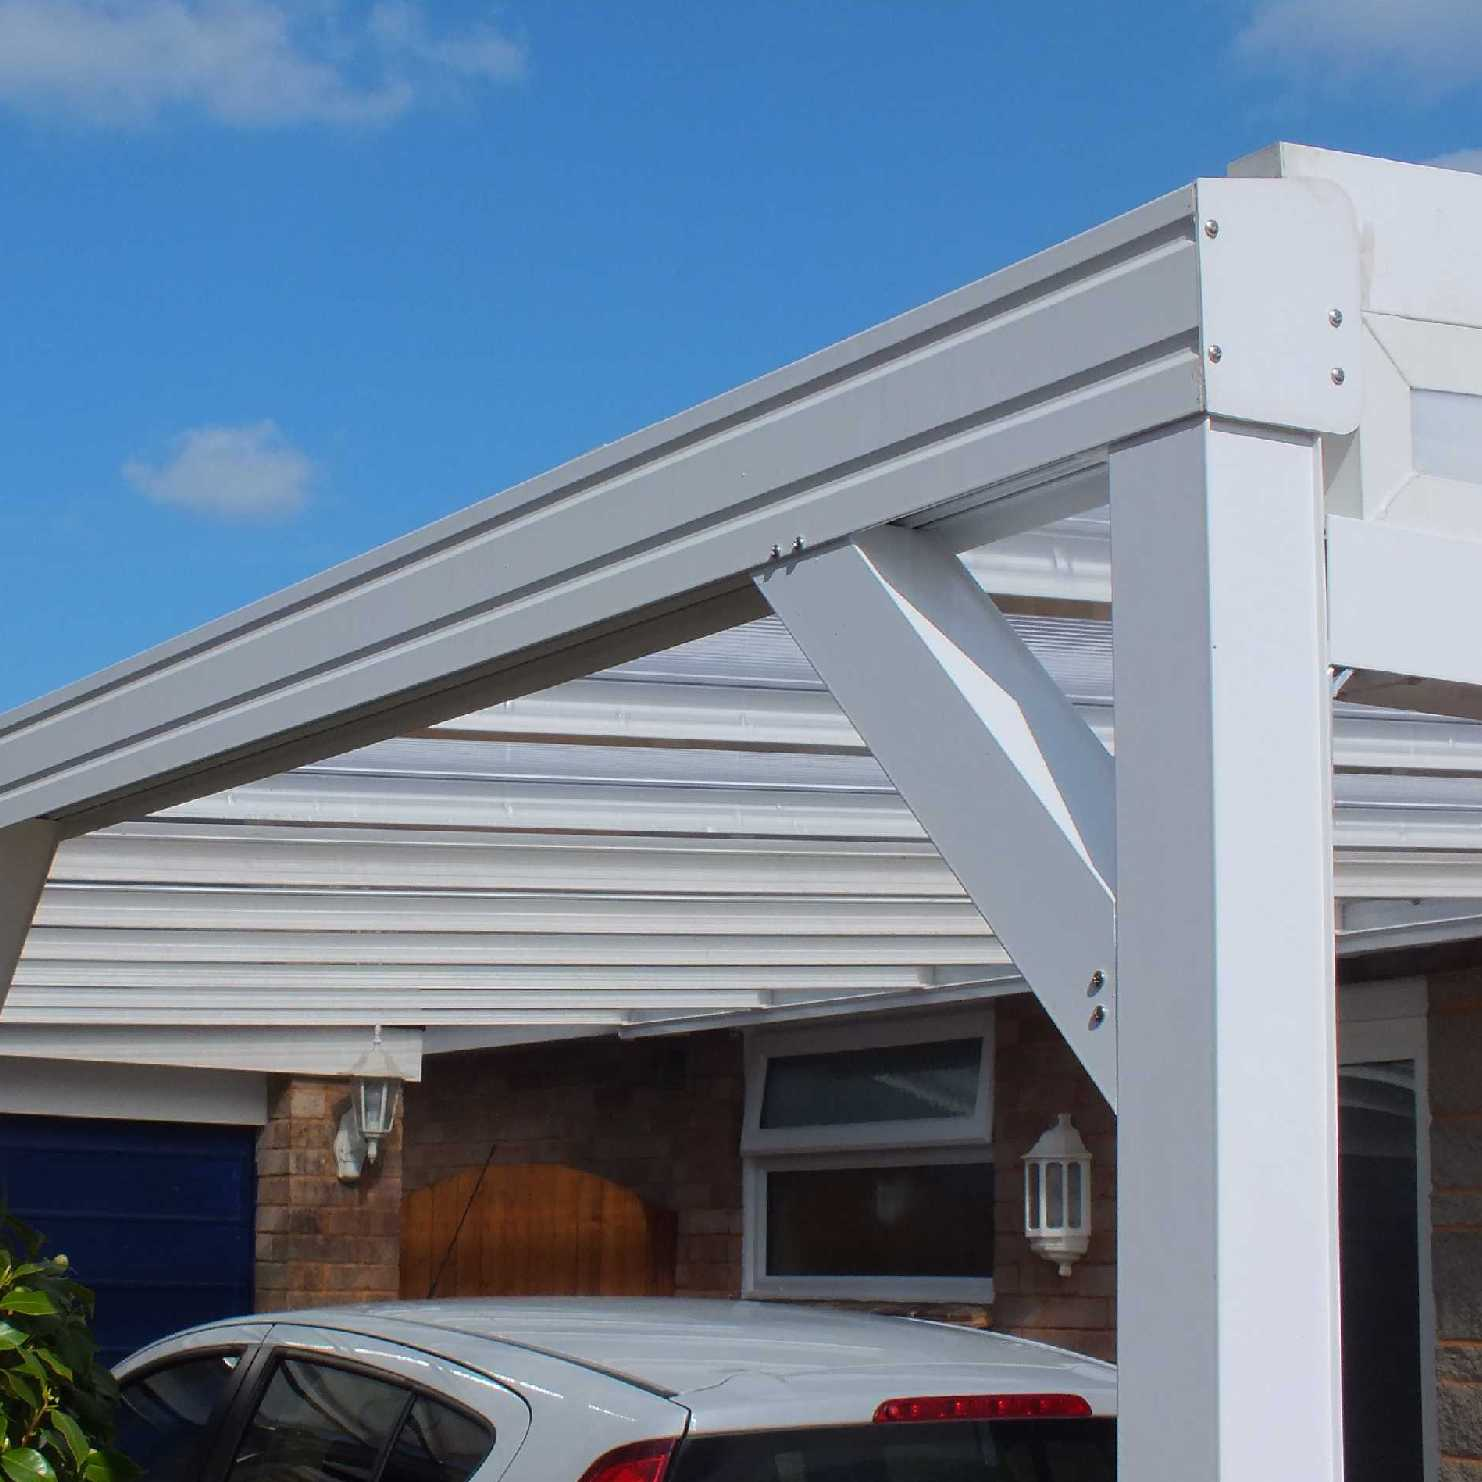 Great deals on Omega Smart White Lean-To Canopy with 16mm Polycarbonate Glazing - 5.2m (W) x 3.0m (P), (3) Supporting Posts